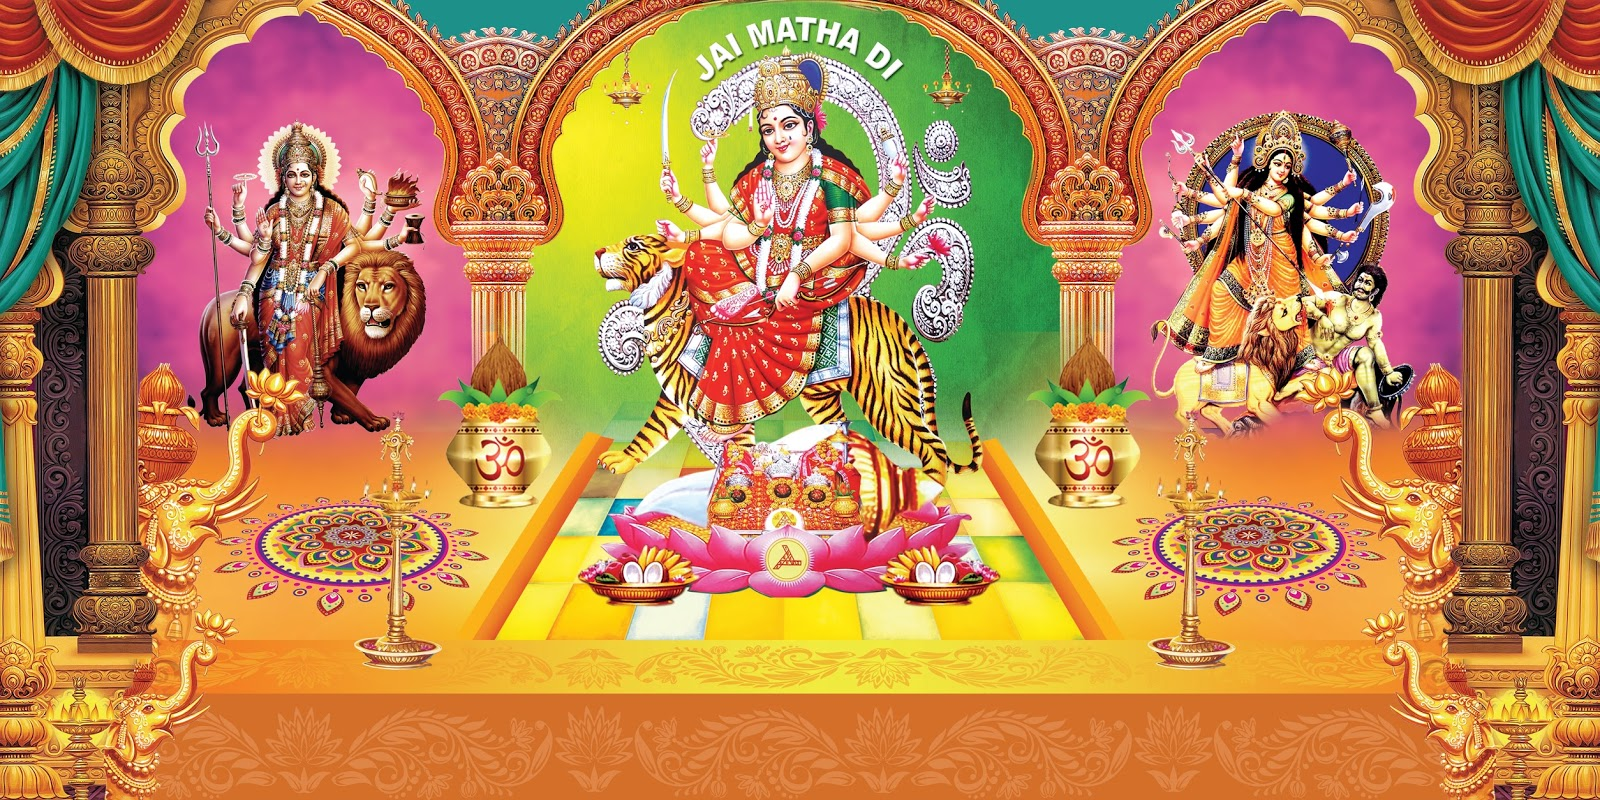 Maa Durga Hd Wallpapers And Images Free Online For Photoshop Naveengfx